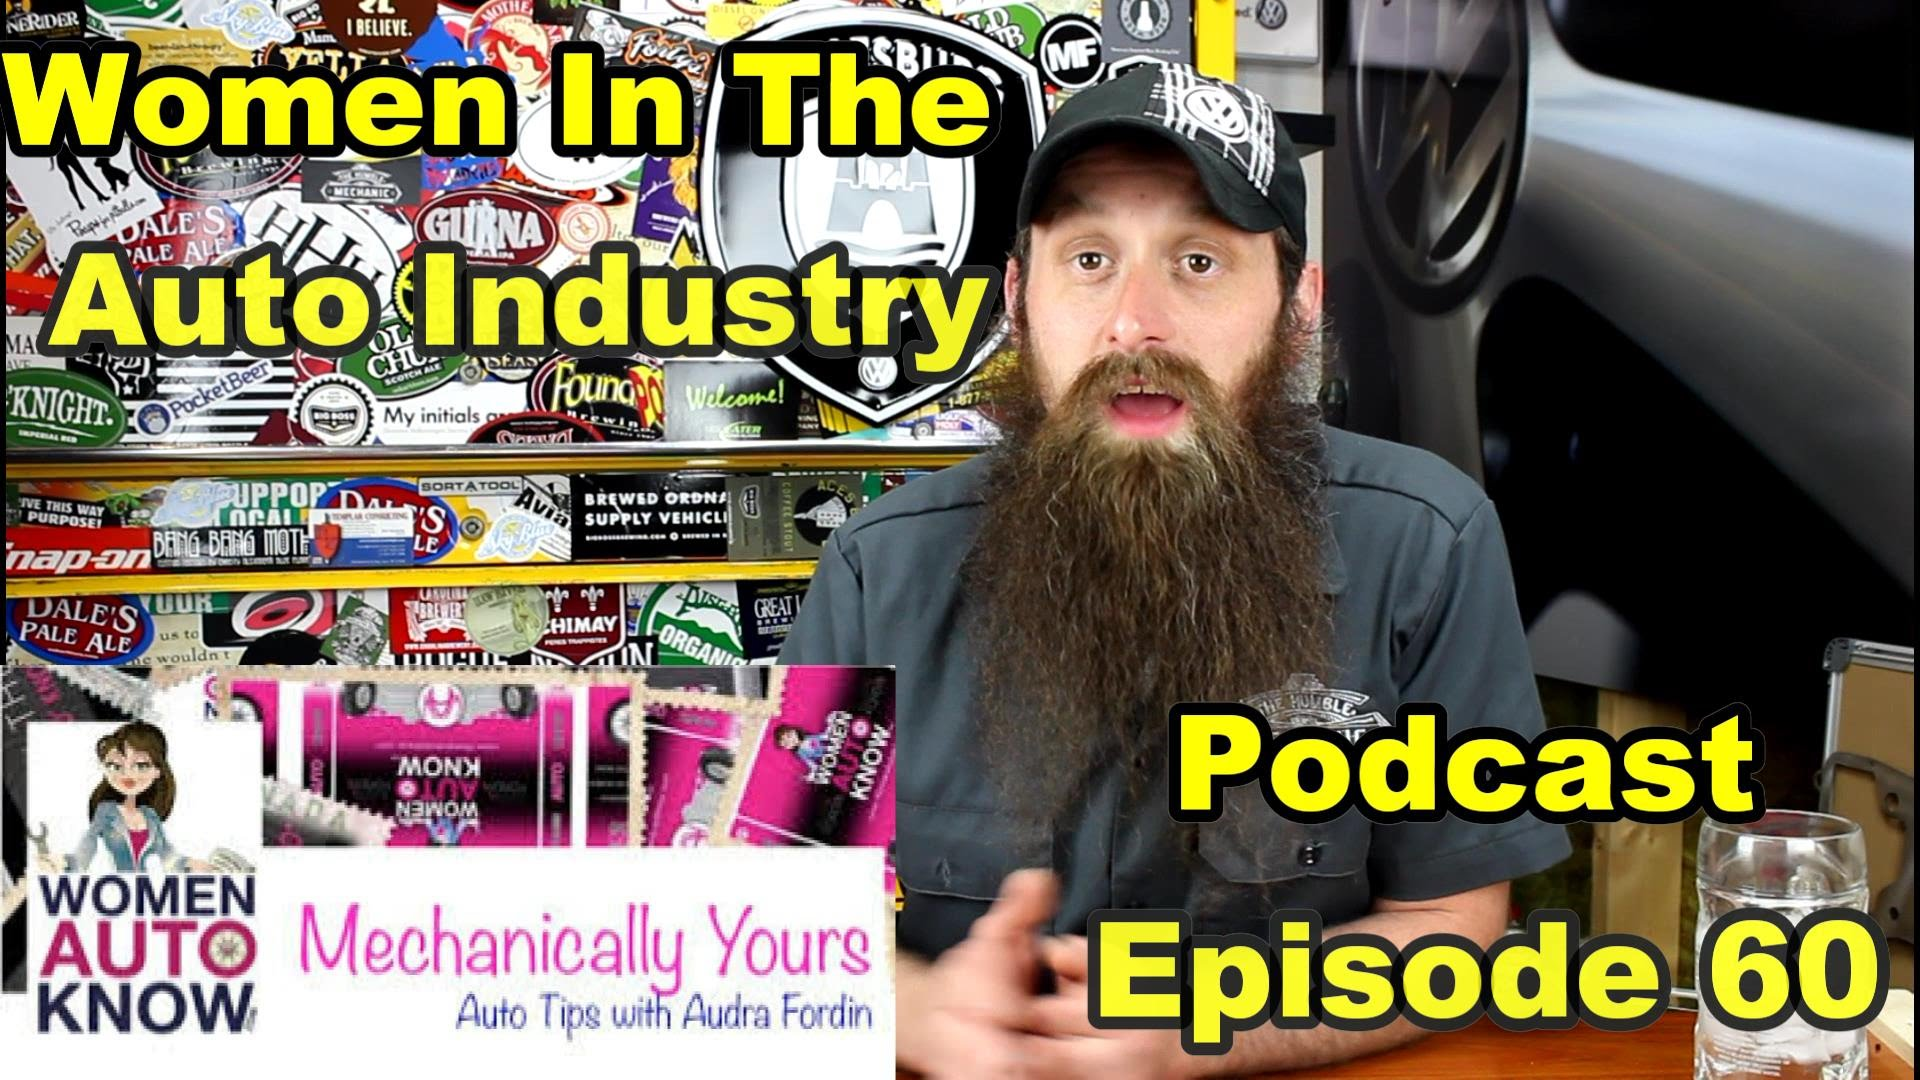 Women In The Automotive Industry ~ Podcast Episode 60